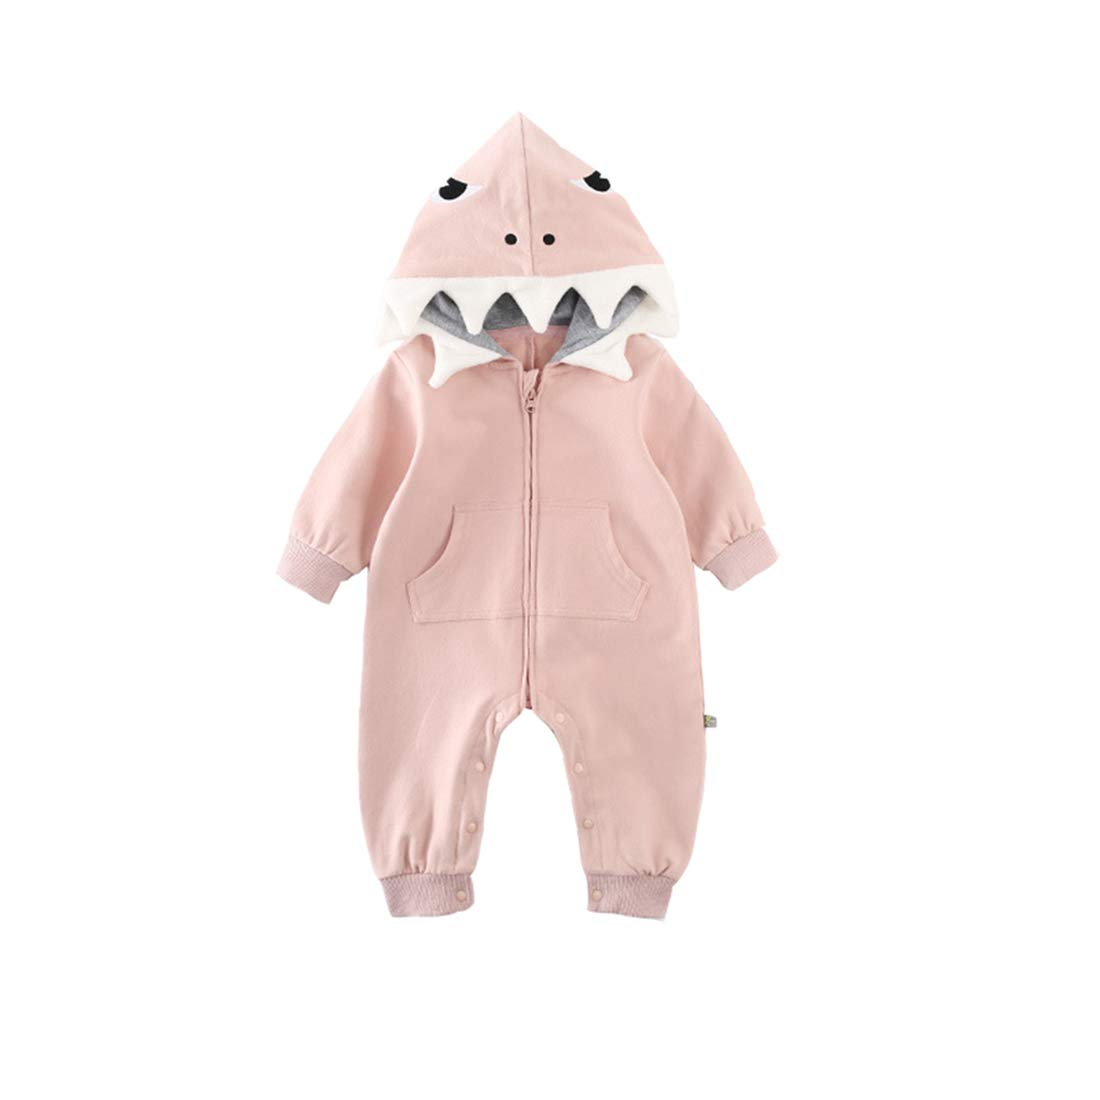 ALLAIBB Baby Shark Costume Onesie Cotton 3D Cartoon Romper Cute Jumpsuit Hooded Outwear for Newborn Infant Kids Boys Girls(3-6M, Pink)